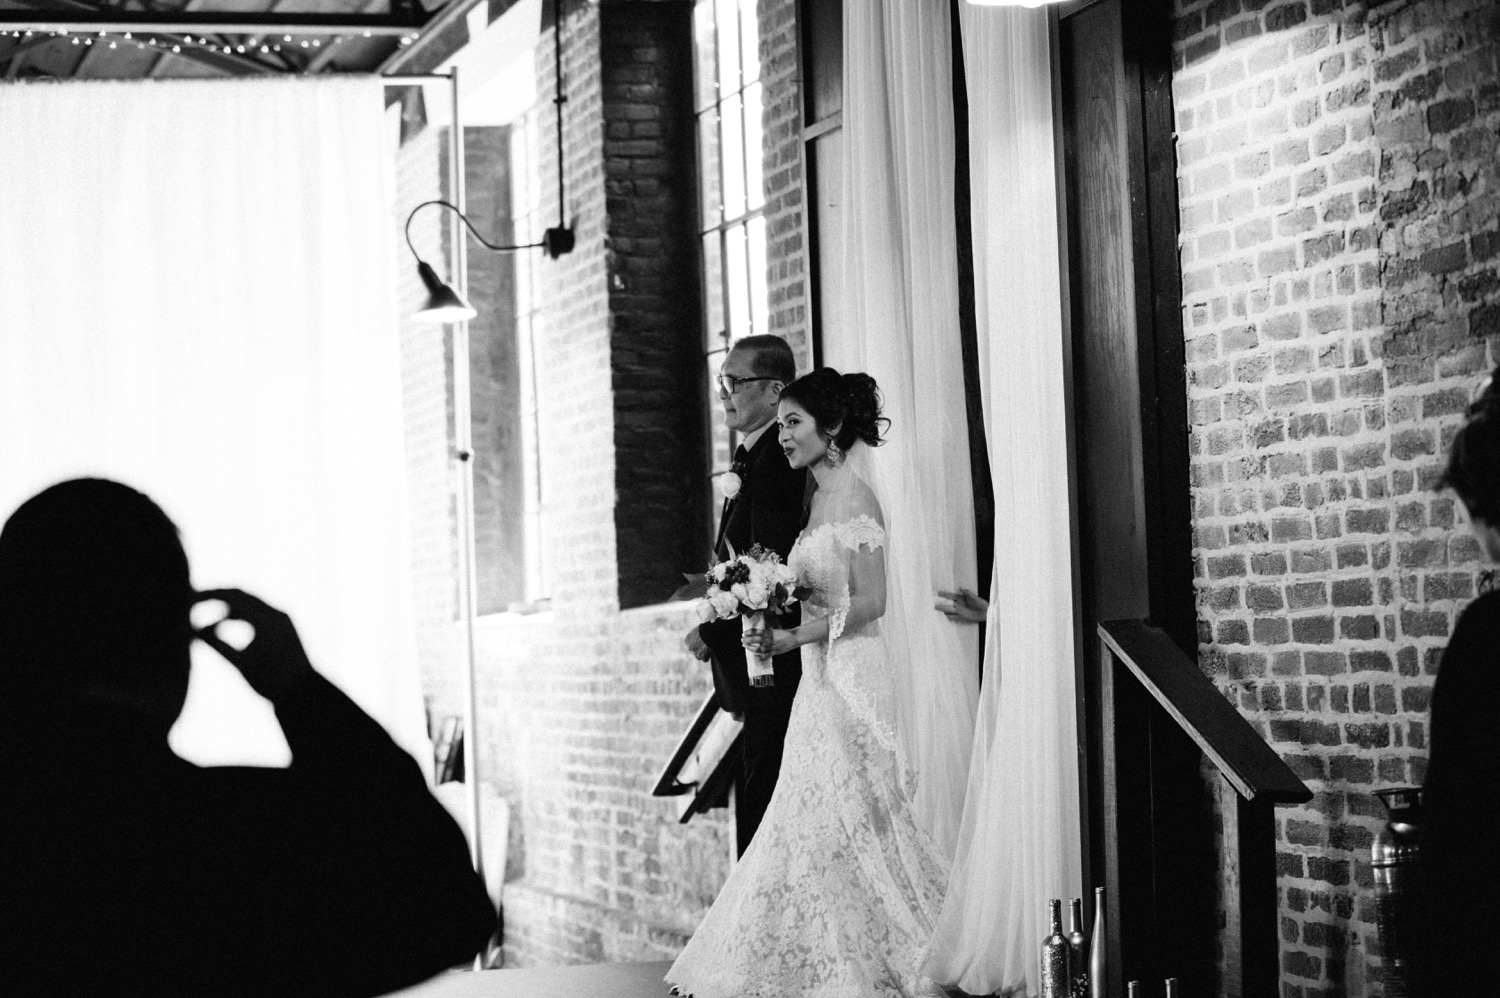 046_Rebekah+Will_Slideshow_154_gianvaldiviaphoto_gvpcouples_silk_virginia_Wedding_mill_old_innattheoldsilkmill_fredericksburgwedding_virginiaweddingphotographer.jpg